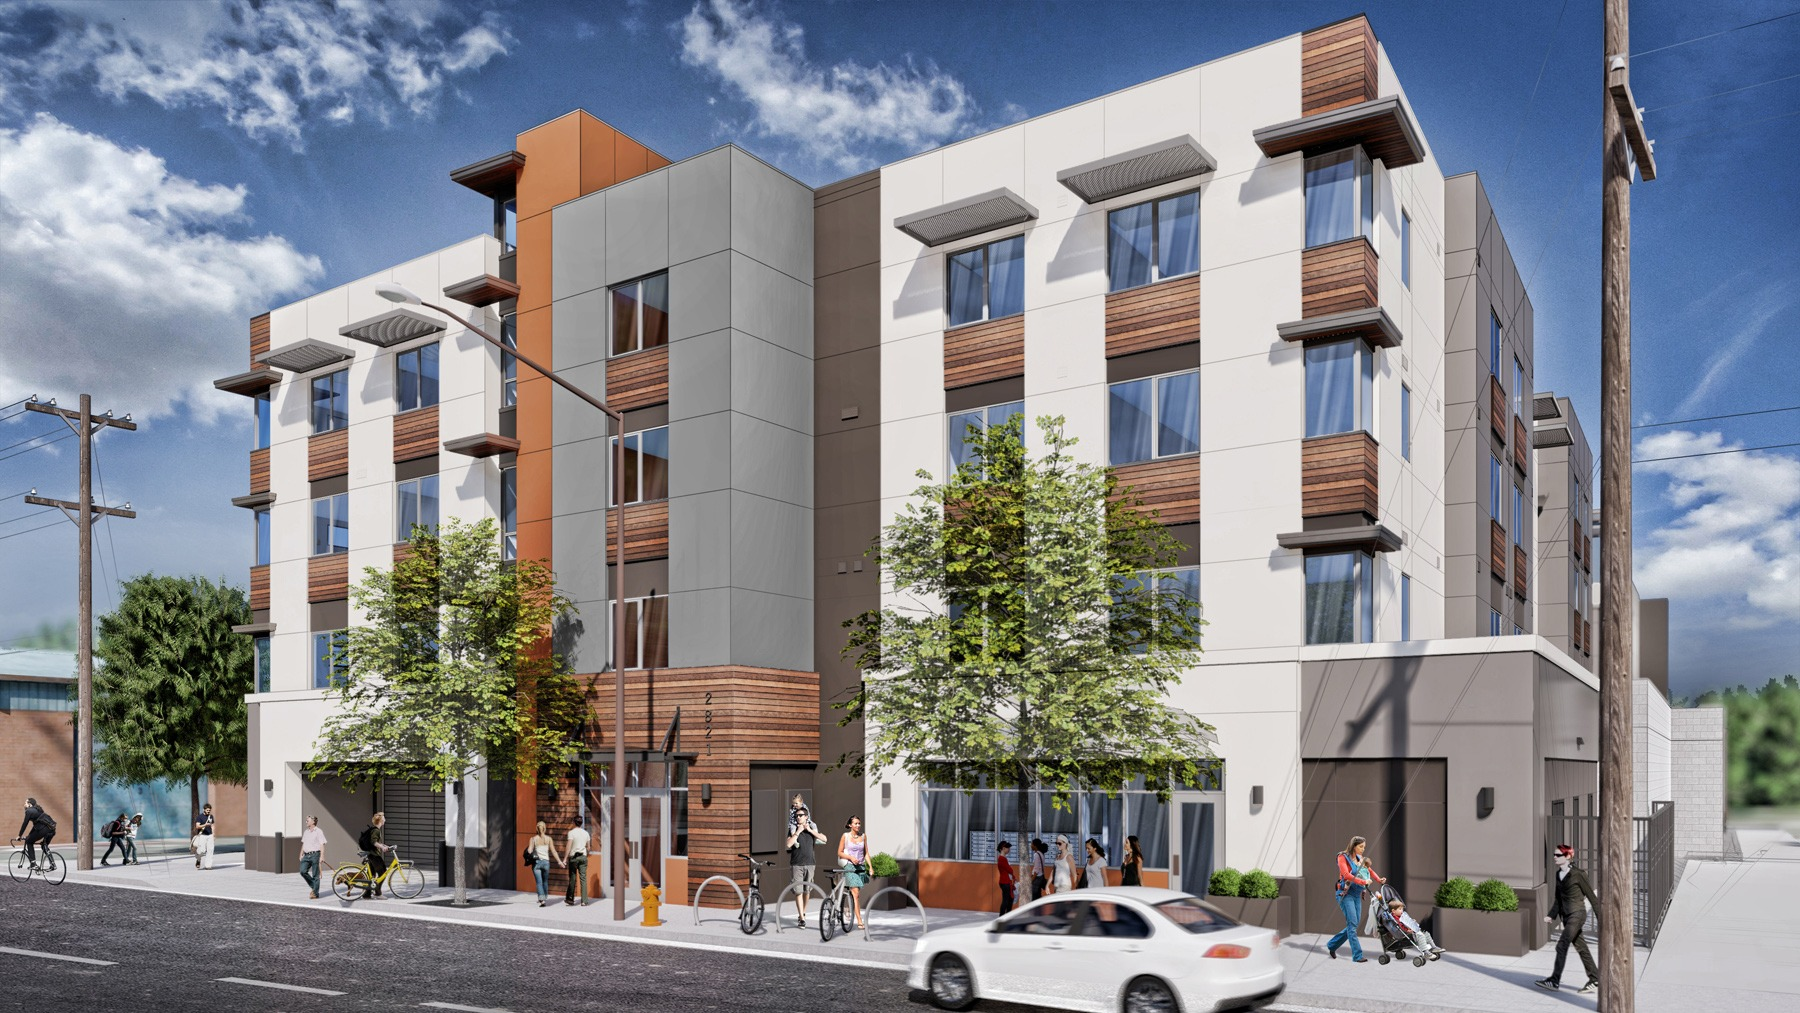 Palo Alto Housing: Affordable Community for Low-Income ...